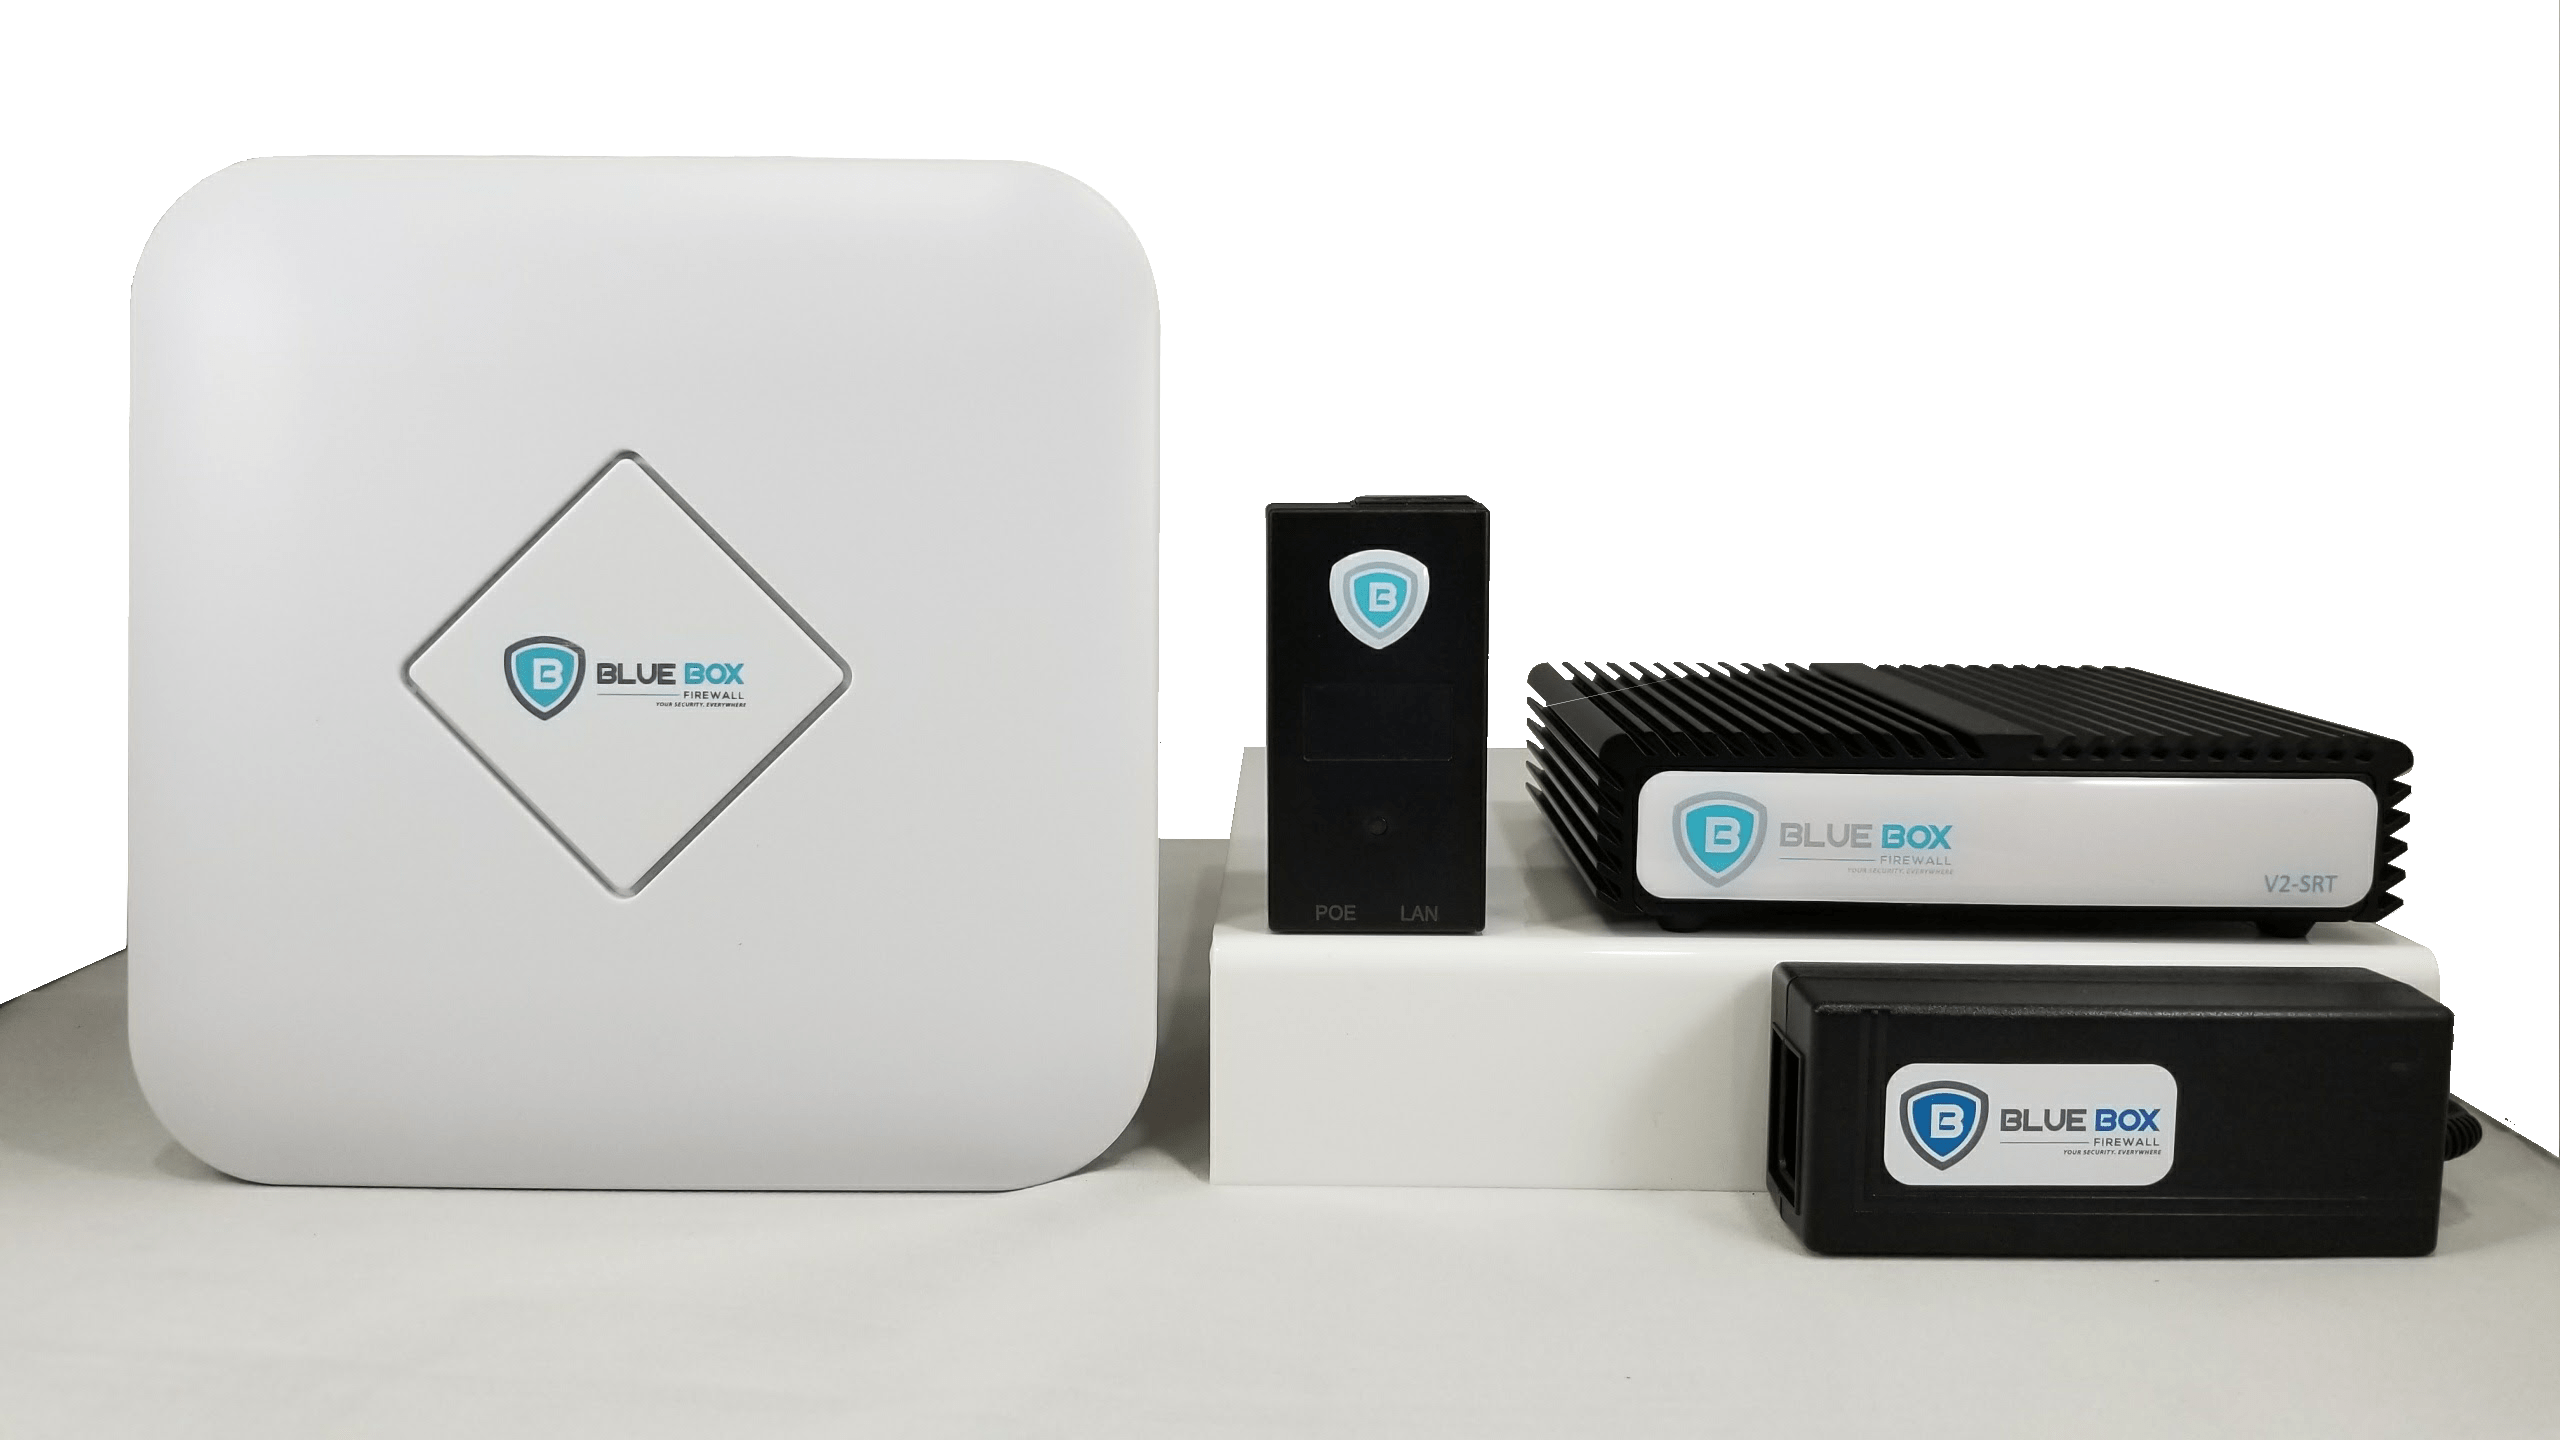 Blue Box Firewall Cyber Security Solution